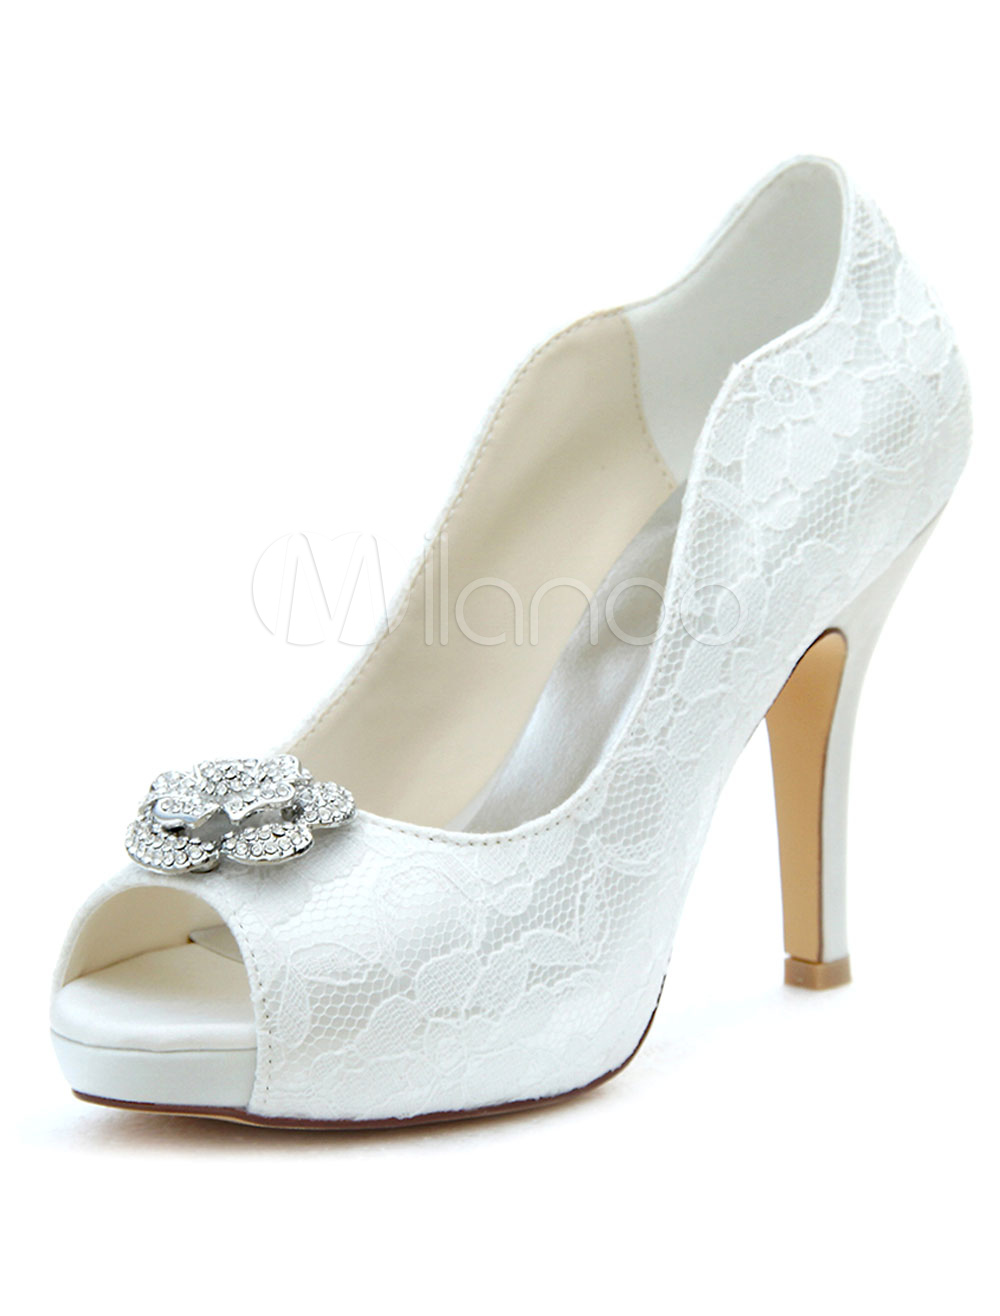 Lace Wedding Shoes High Heel Ivory Pumps Peep Rhinestone Platform Slip-on Bridal Shoes